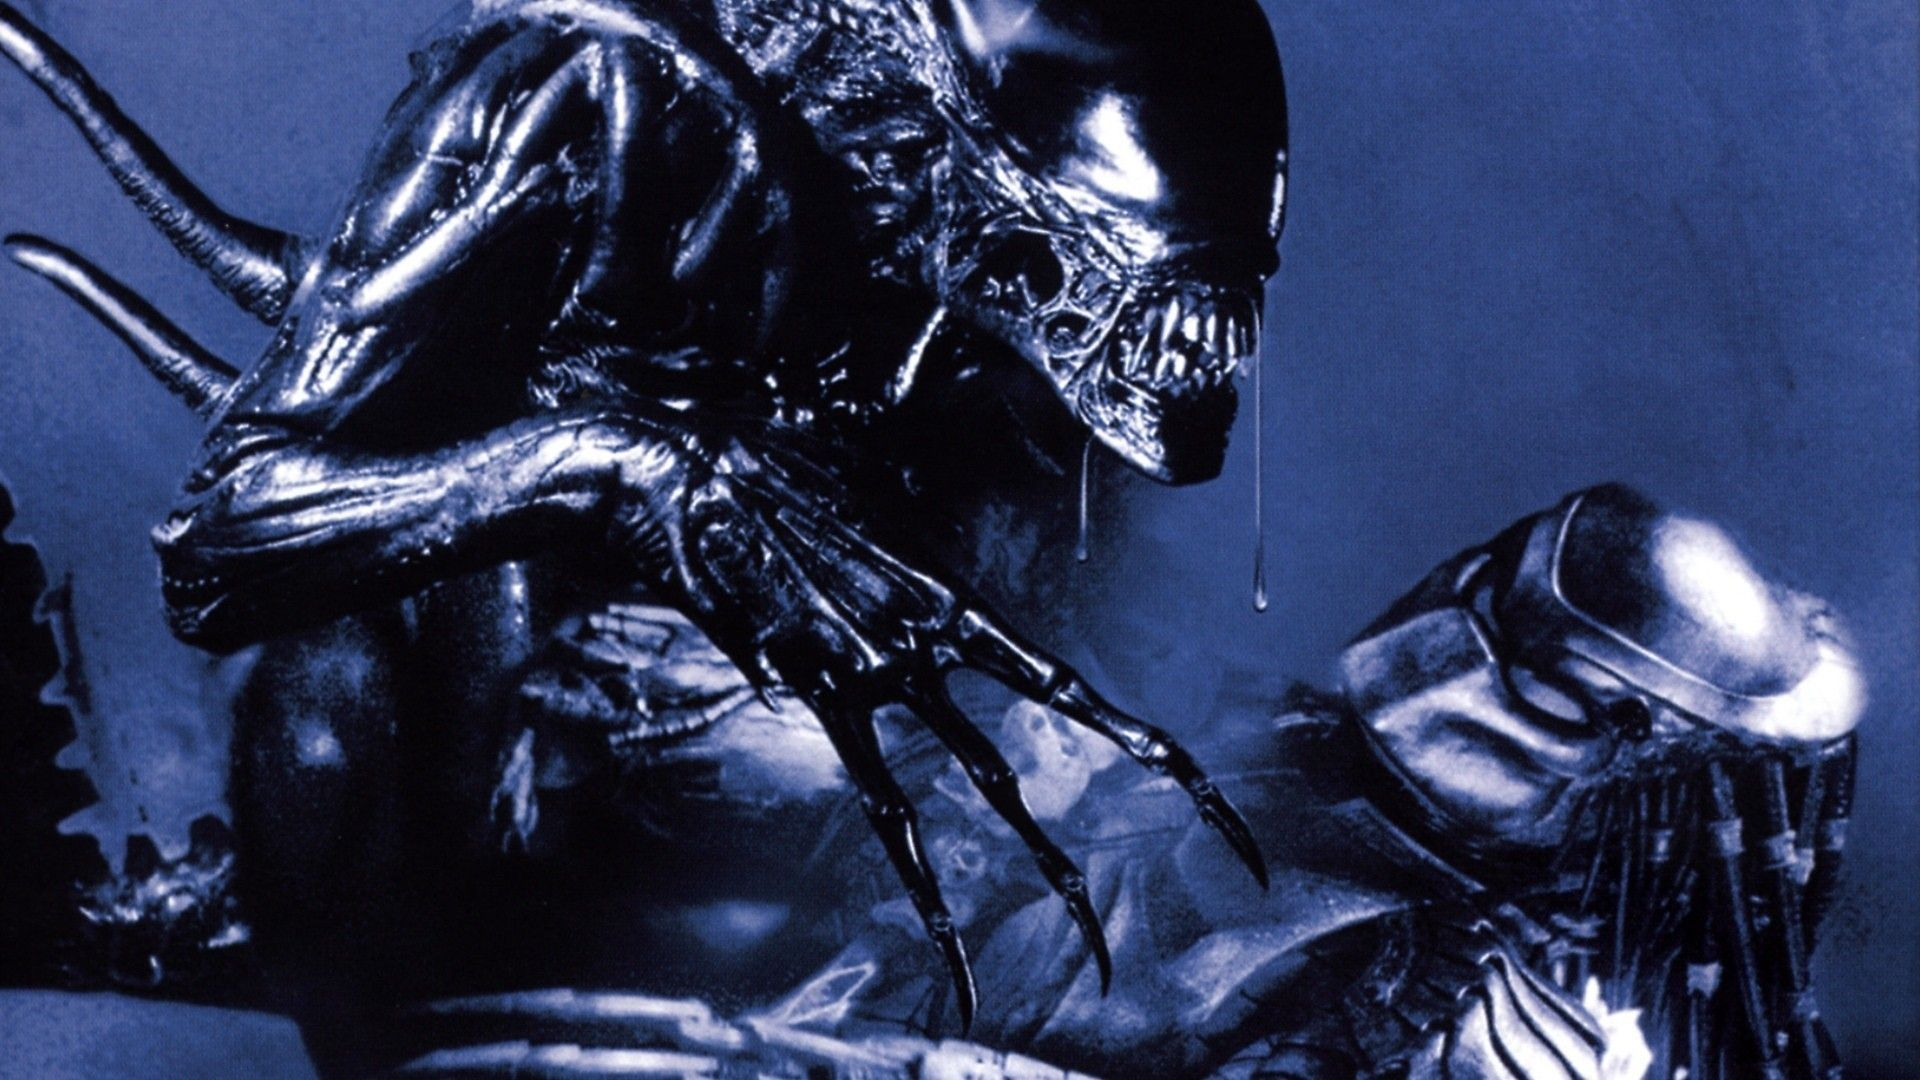 Alien vs Predator in AVP Alien vs Predator (2004)